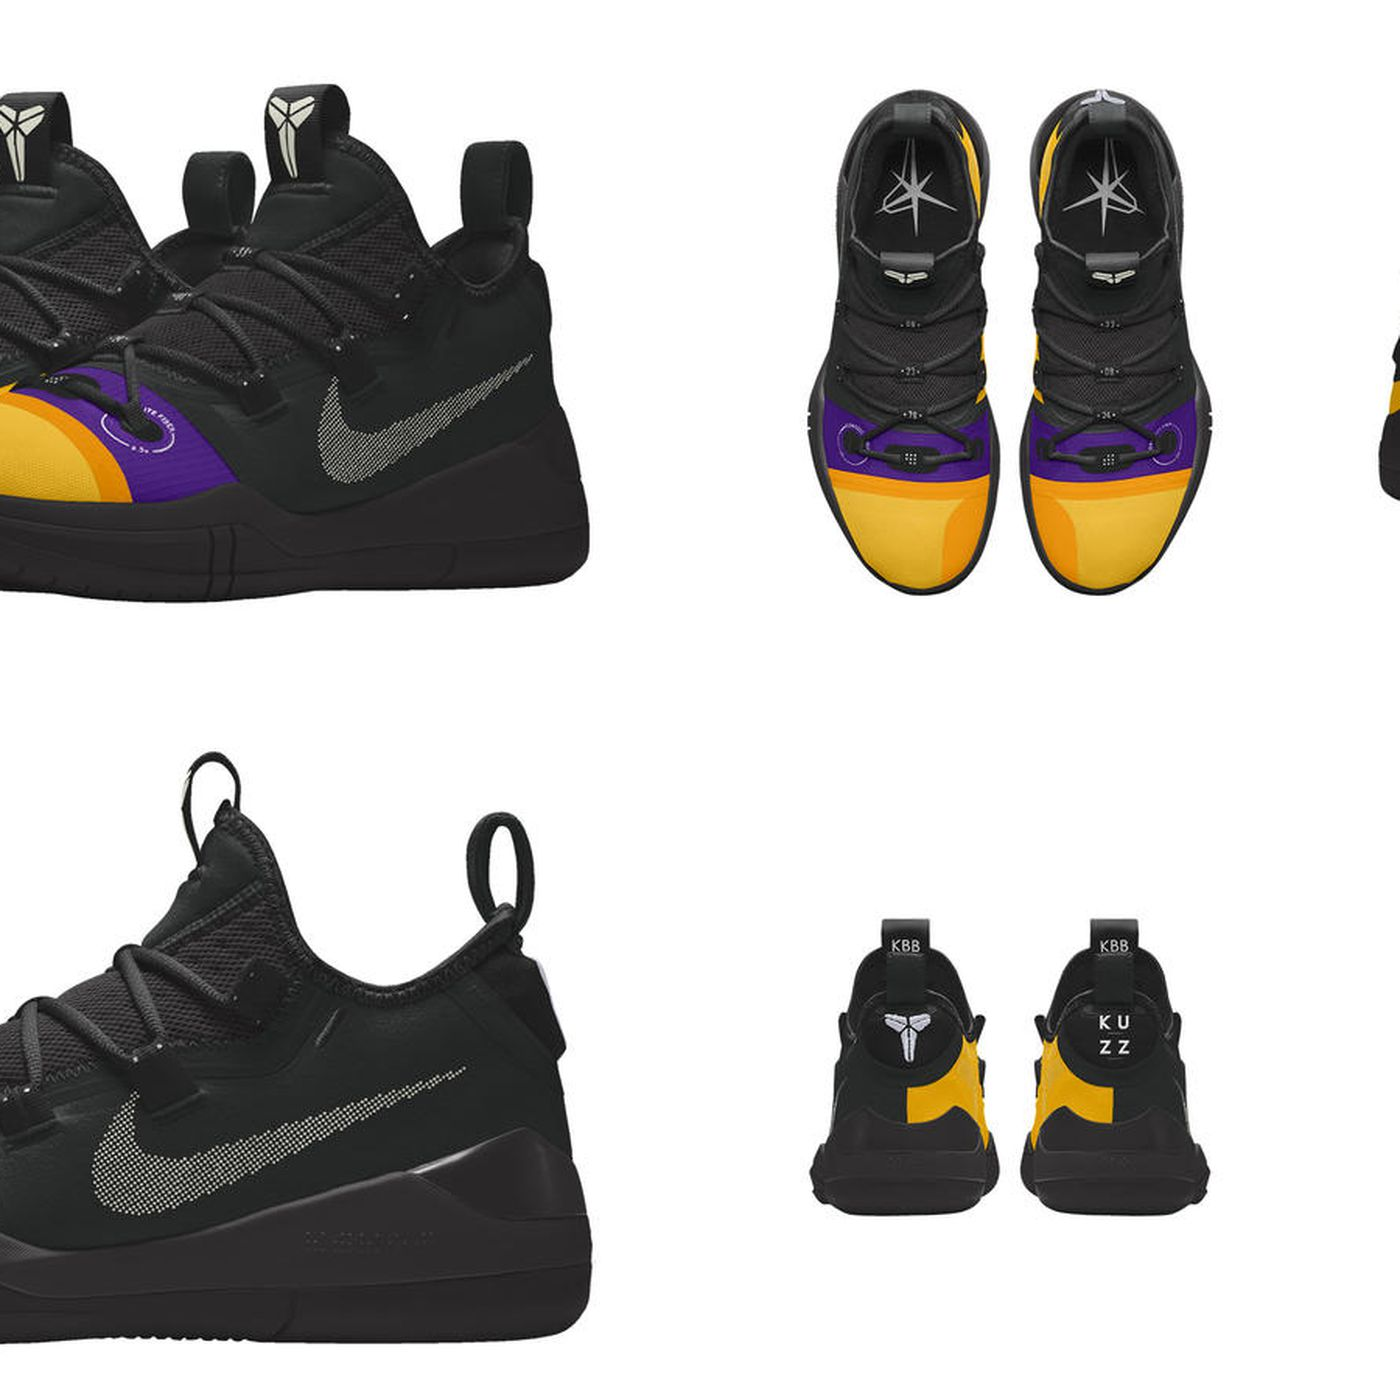 b6b7e2d75ad6 Lakers News  Kyle Kuzma to wear customized Nike Kobe AD for NBA opening  week - Silver Screen and Roll